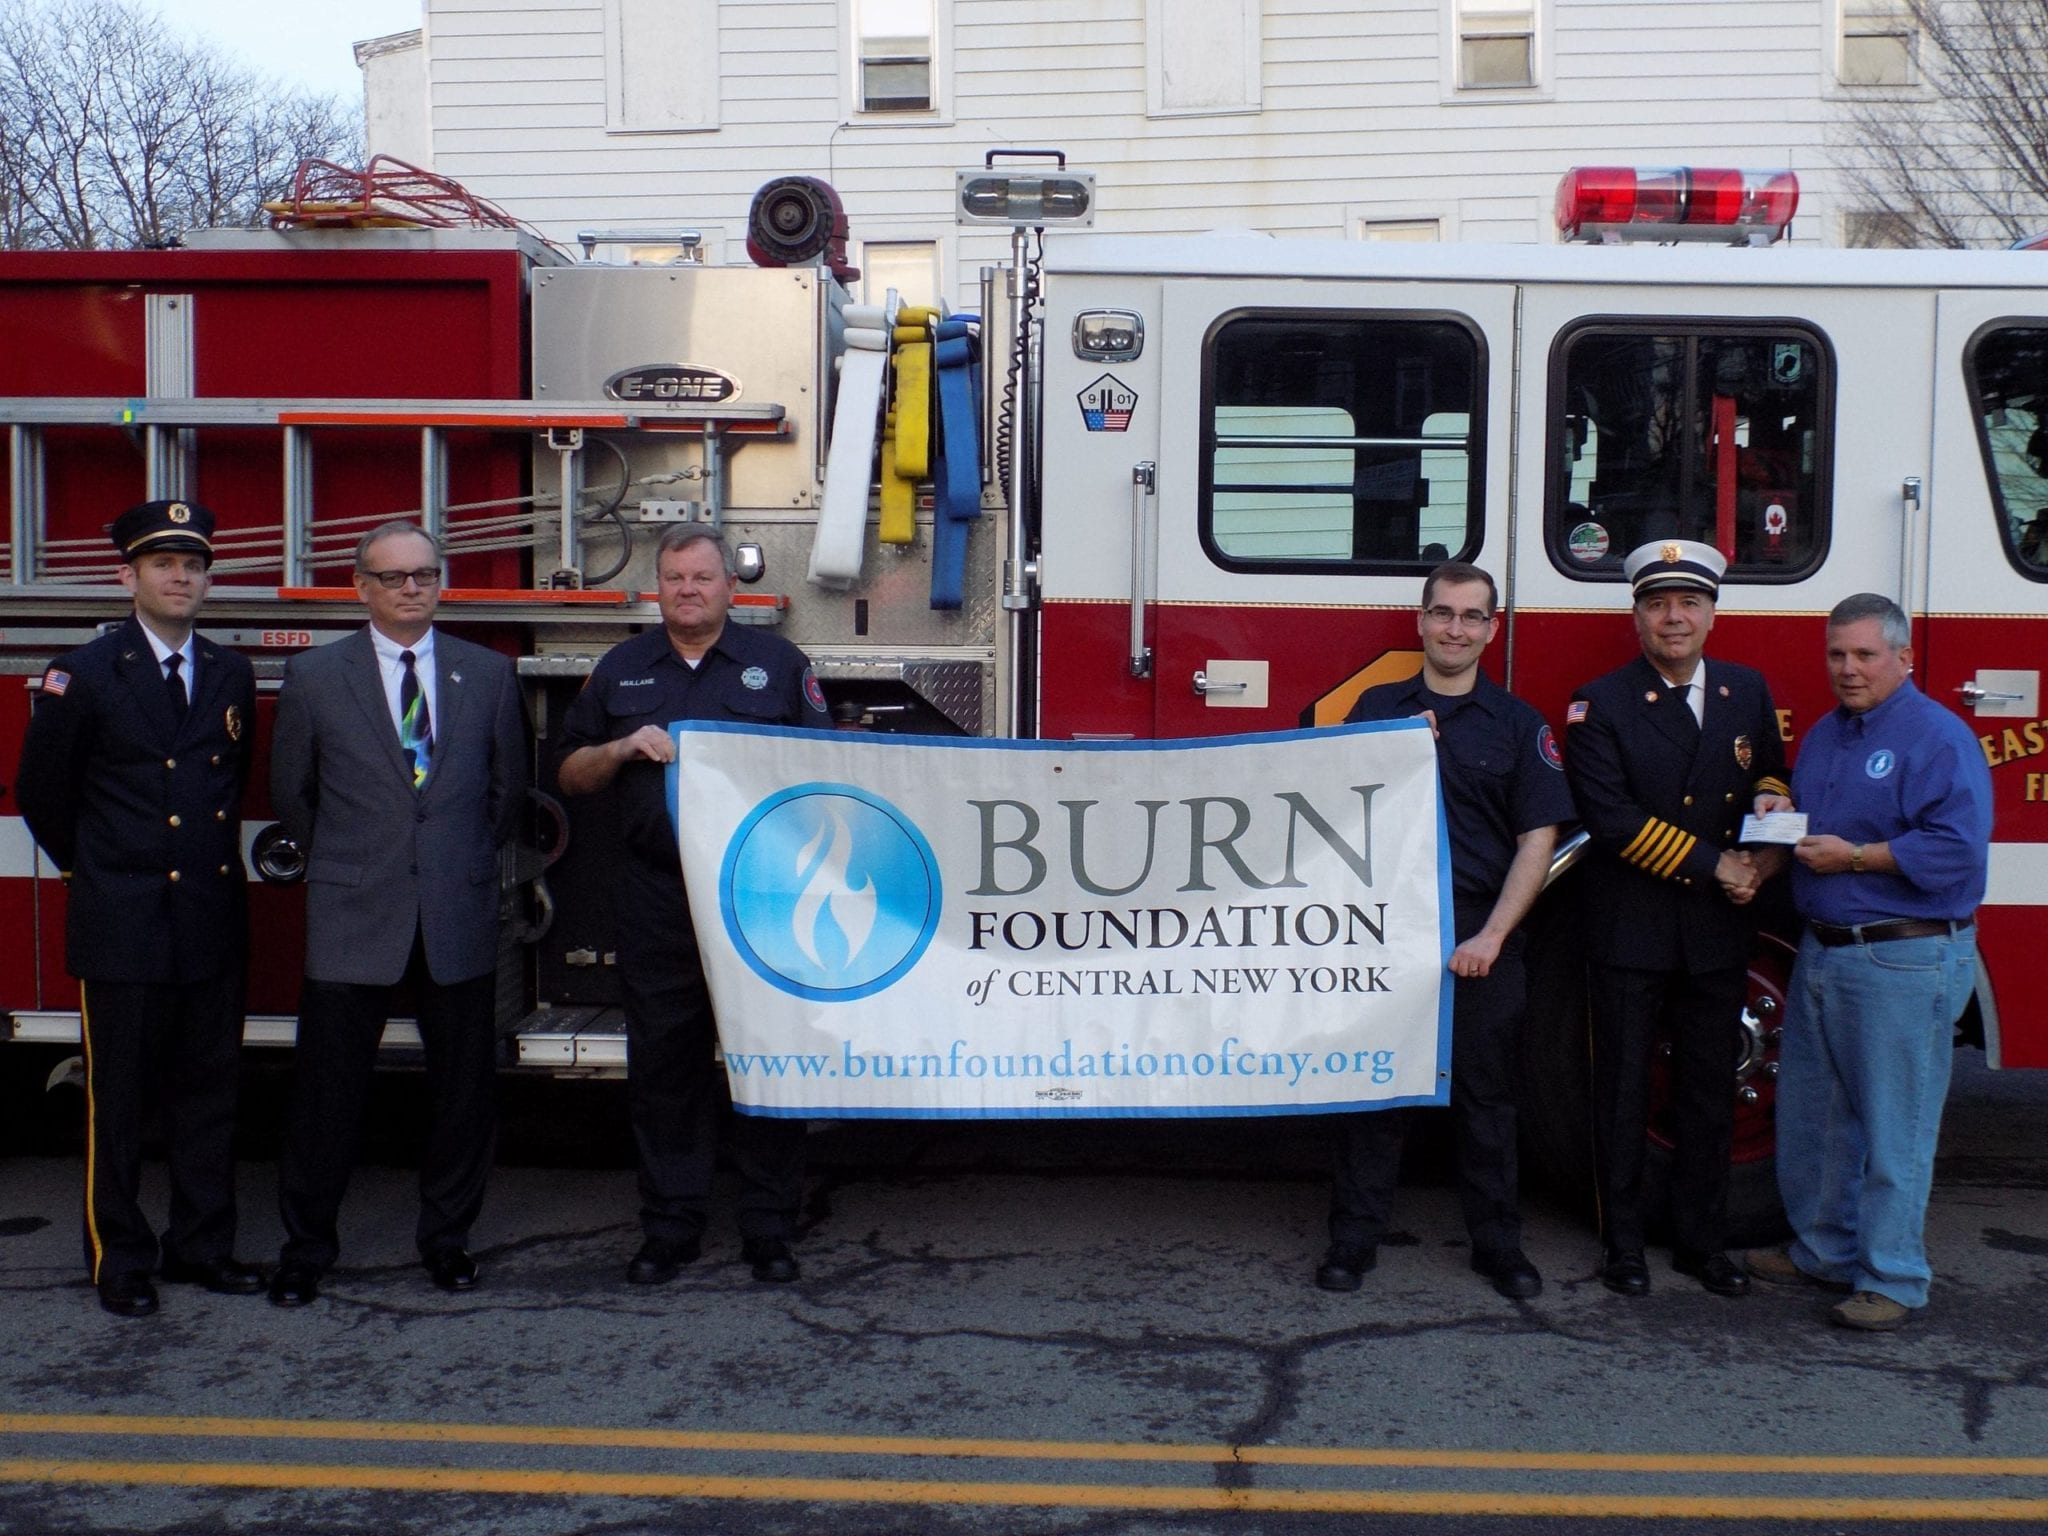 East Syracuse FD donates $10,000 to Burn Foundation of CNY